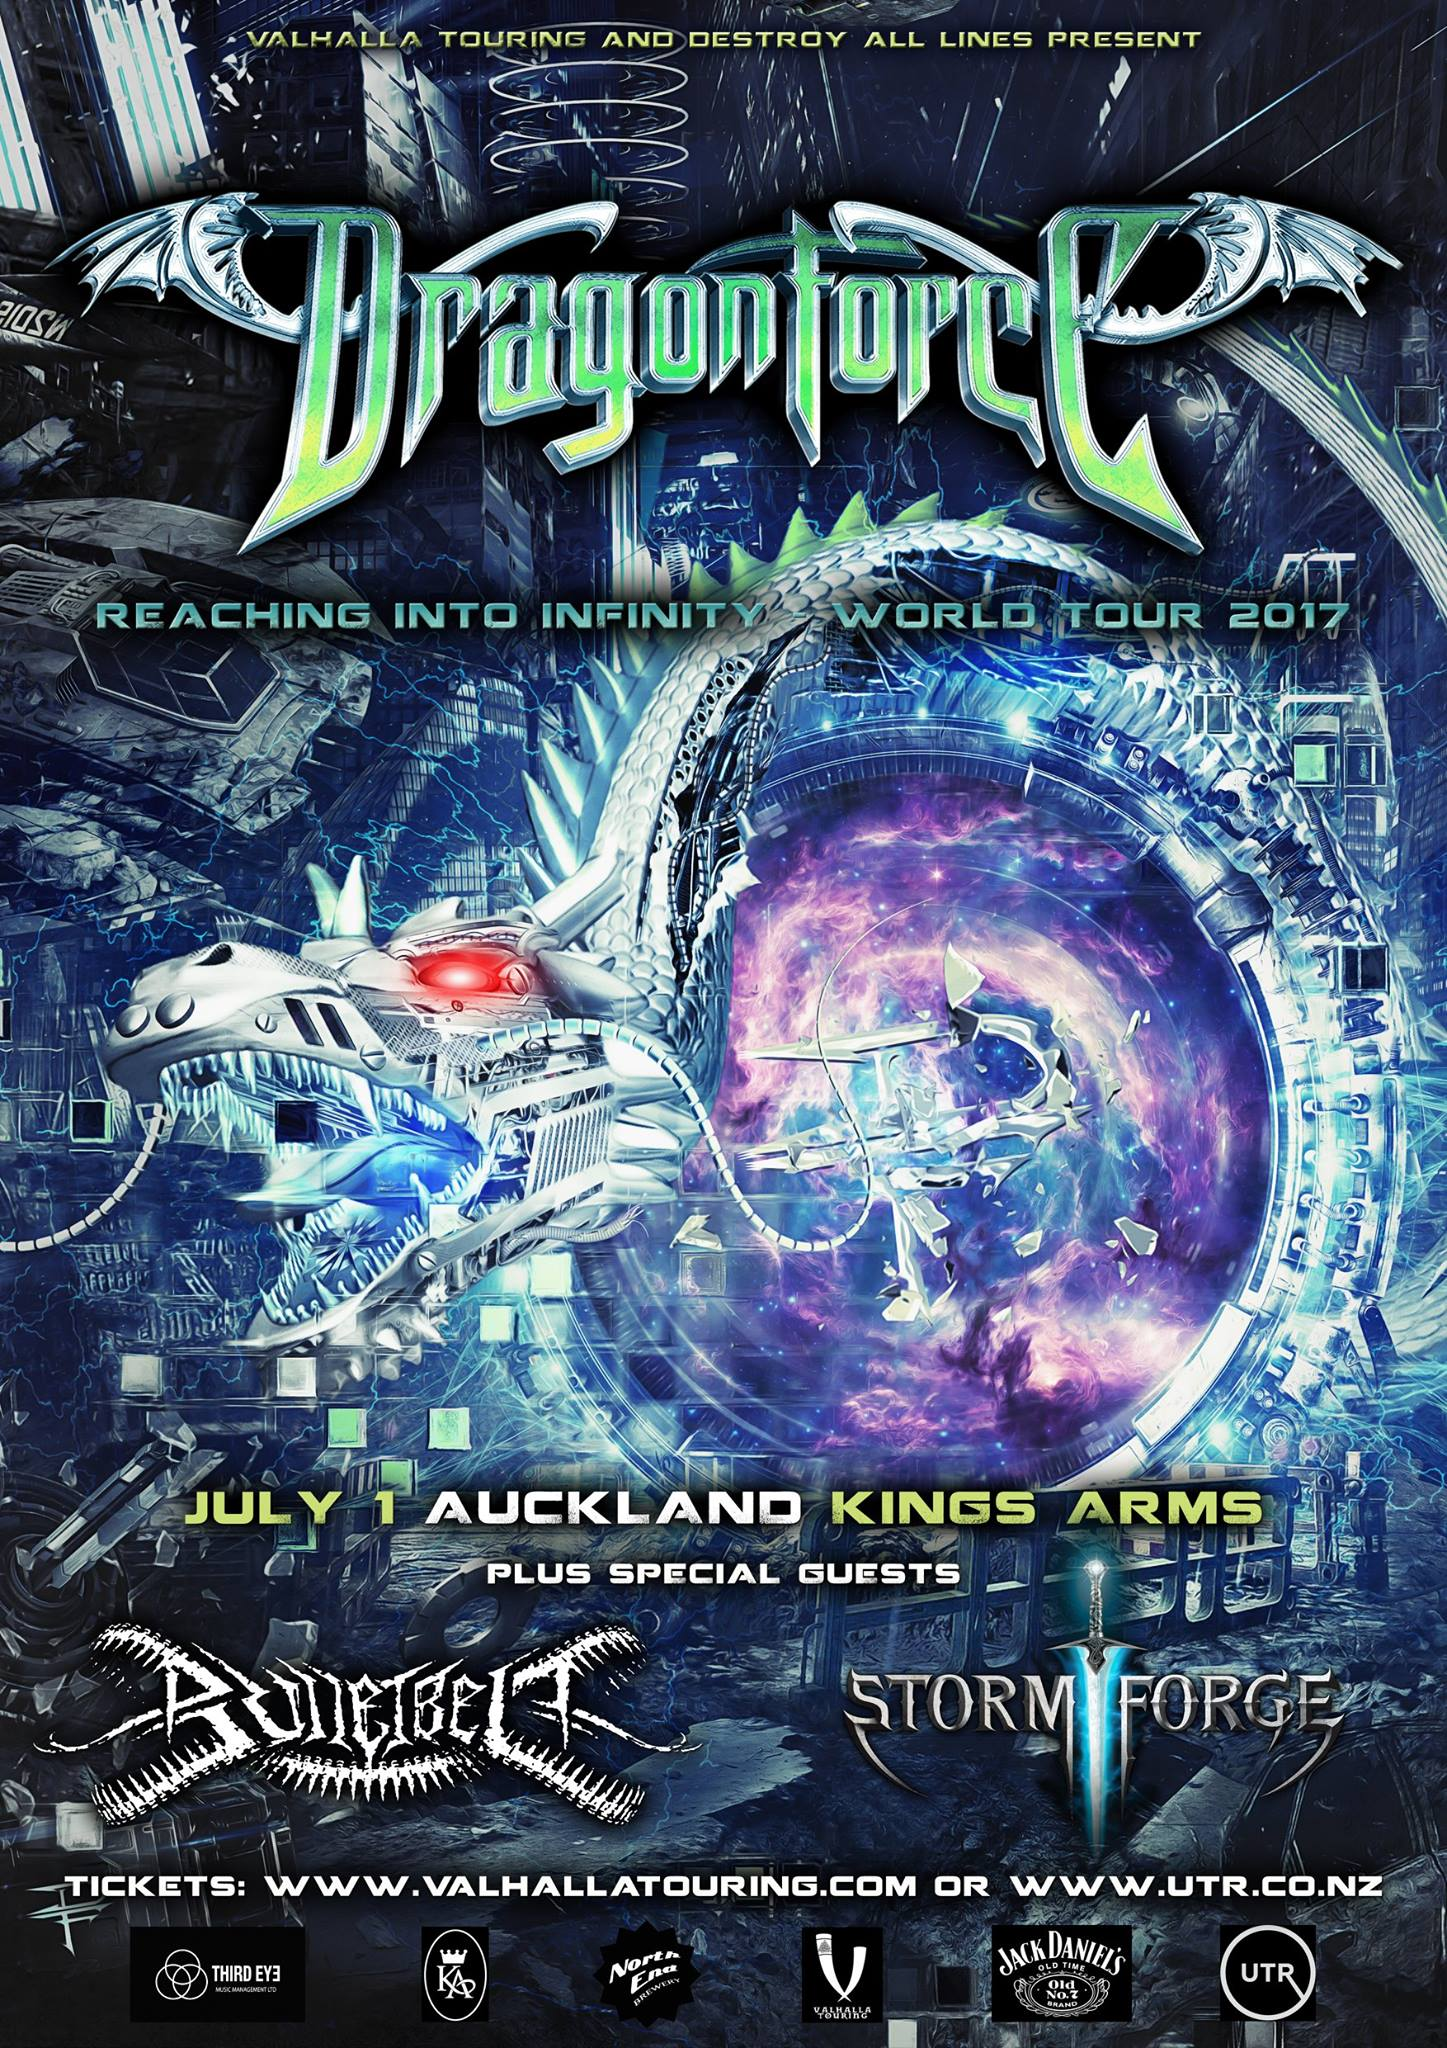 DRAGONFORCE - International metal superstars and power metal speed legends DRAGONFORCEhave revealed that they will be touring New Zealand as part of their Reaching Into Infinity World Tour.